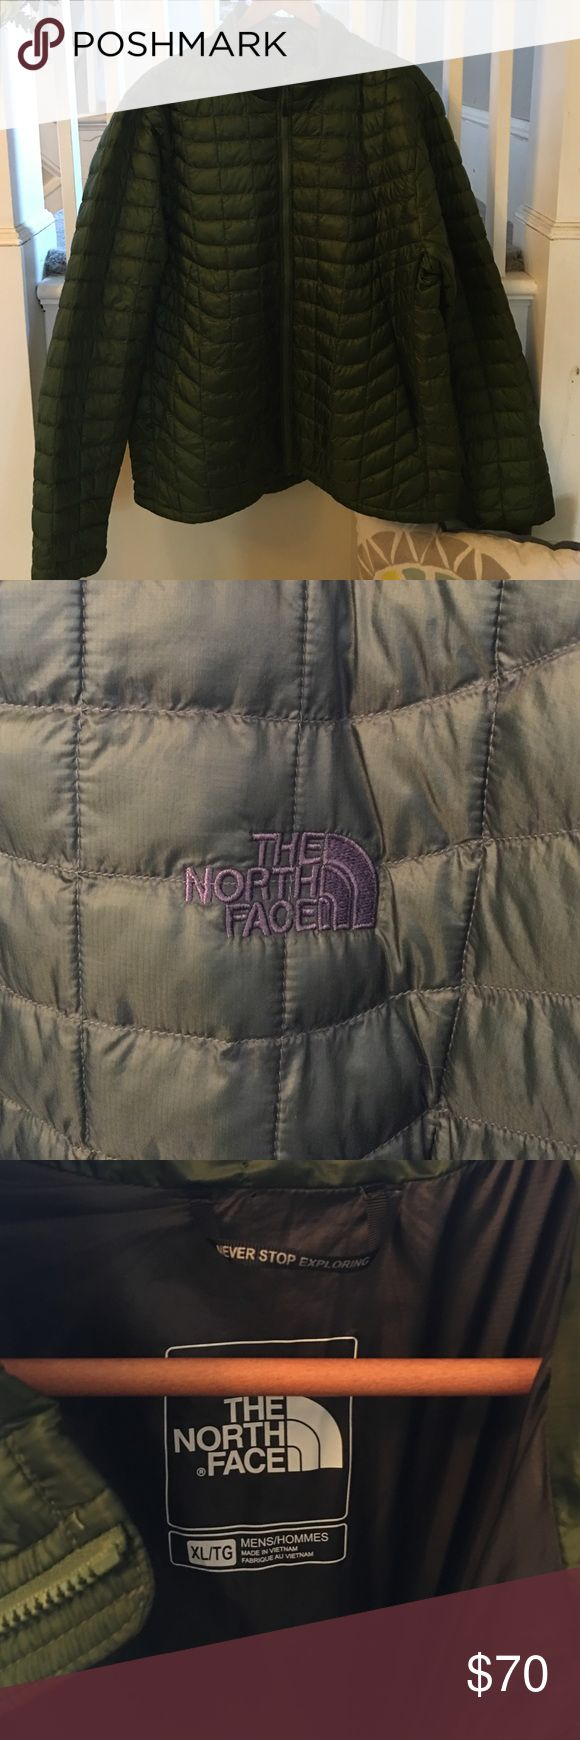 North Face Men's Thermoball Jacket. Like new This jacket is like new. Size XL. North Face Jackets & Coats Puffers